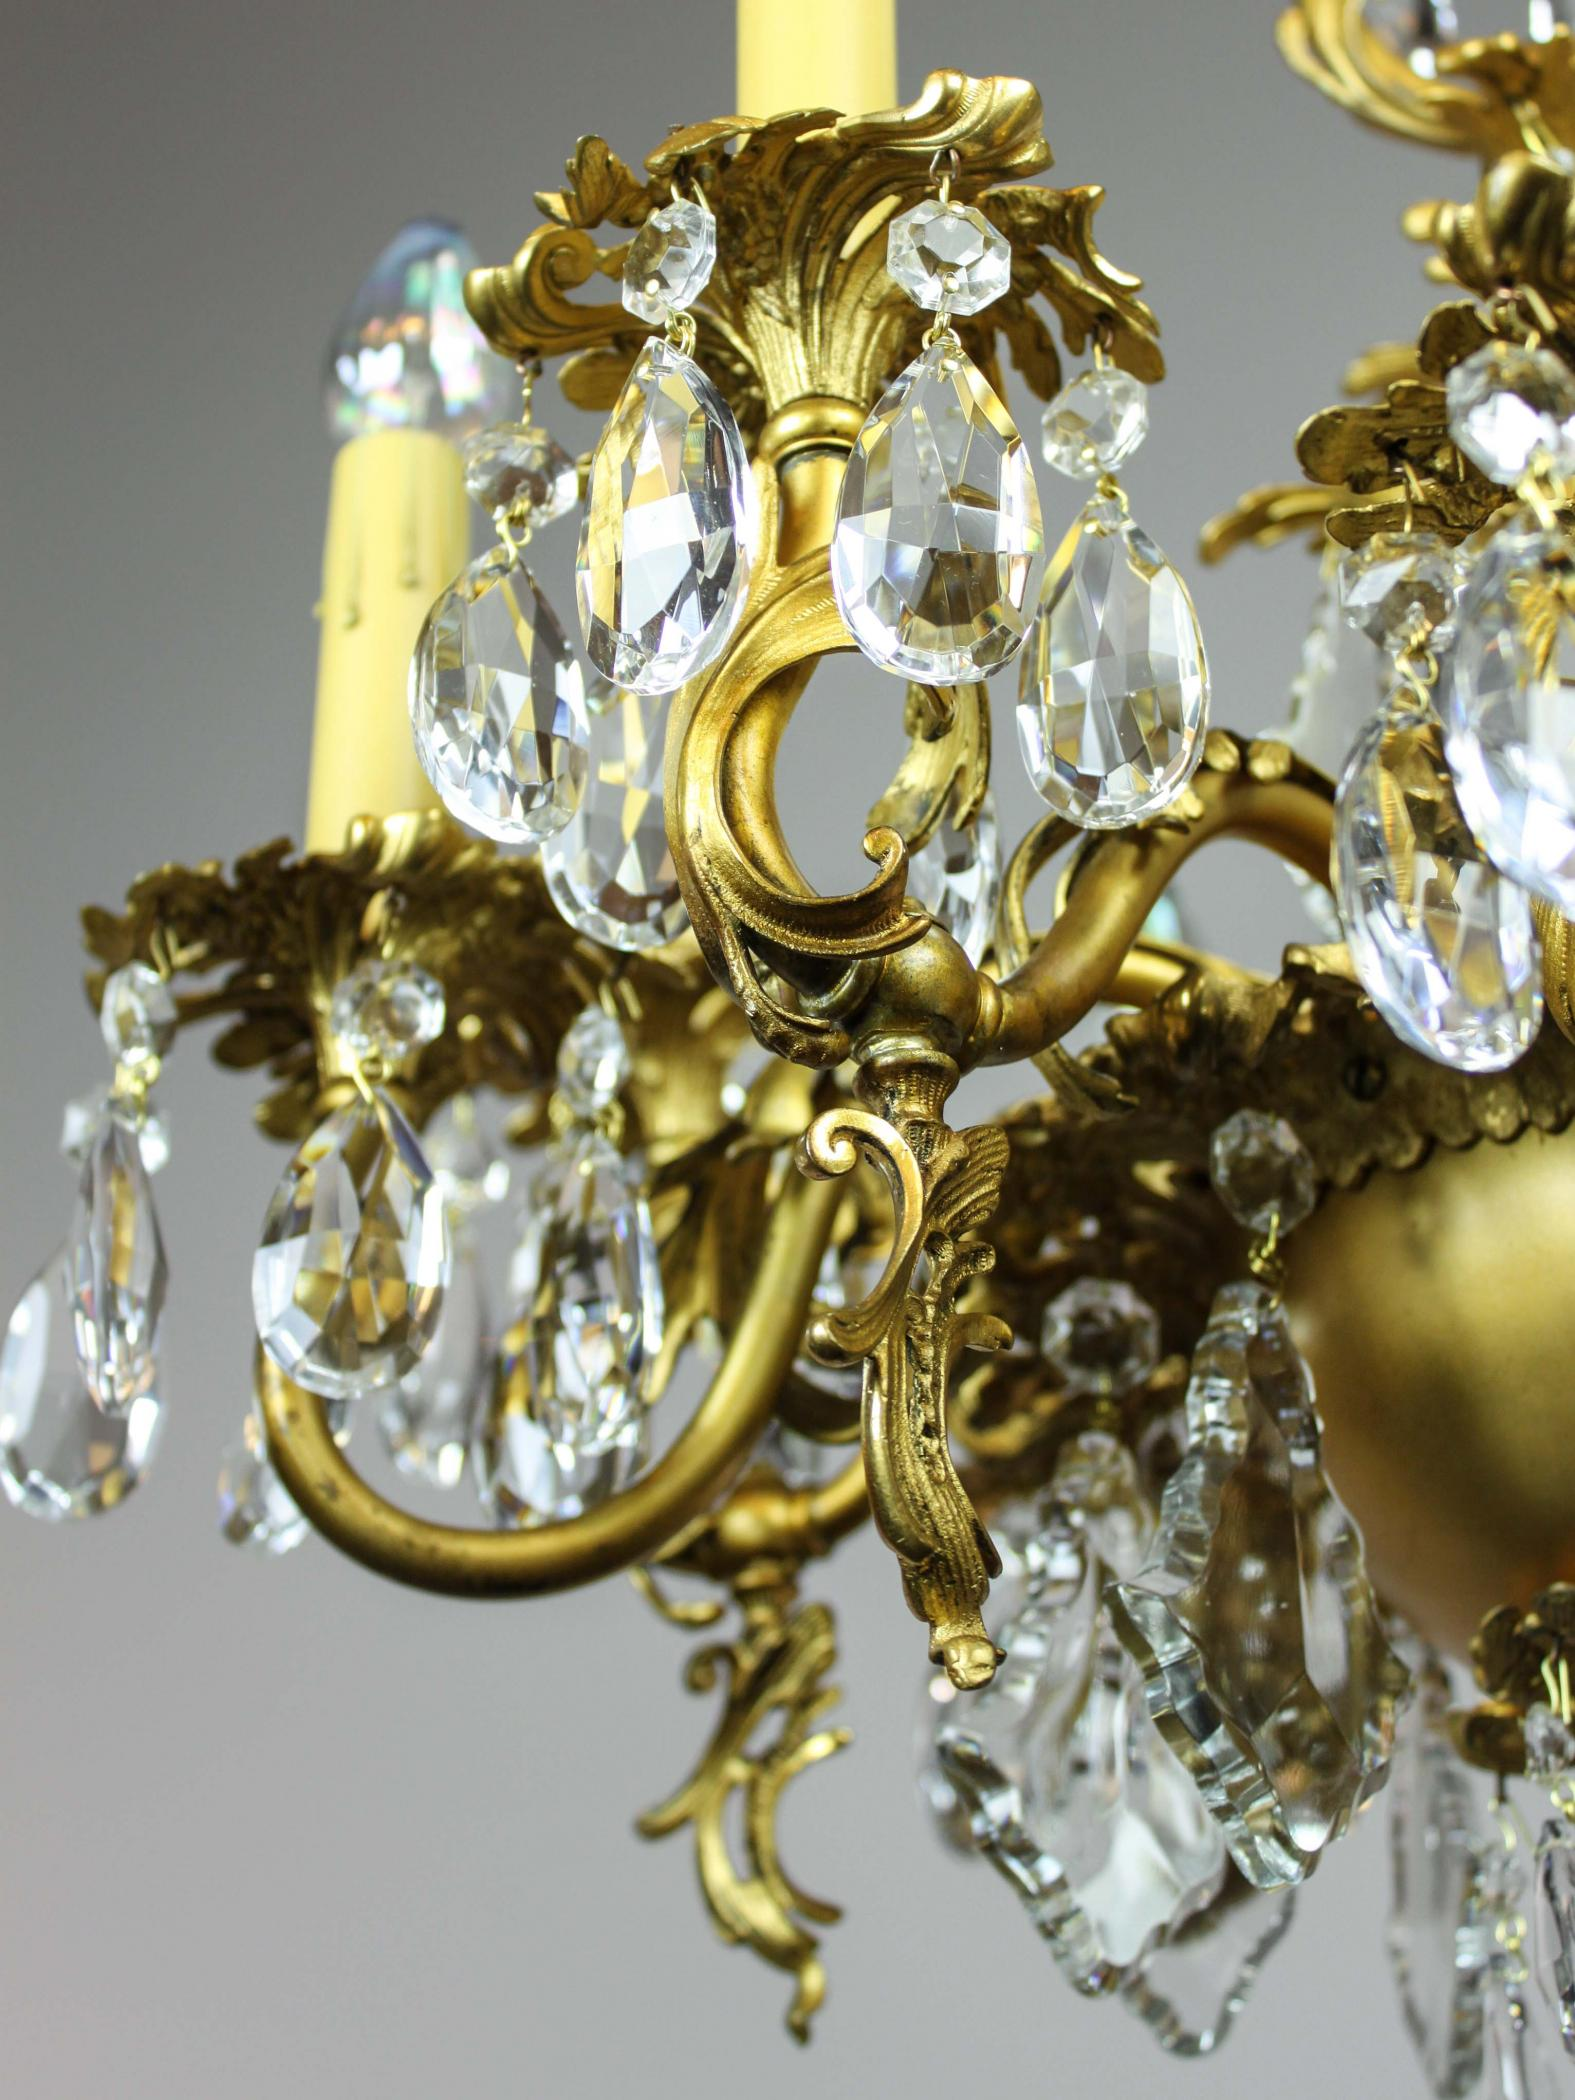 Gold plated rococo 1910 converted gas chandelier 9 light modernism gold plated rococo 1910 converted gas chandelier 9 light aloadofball Choice Image